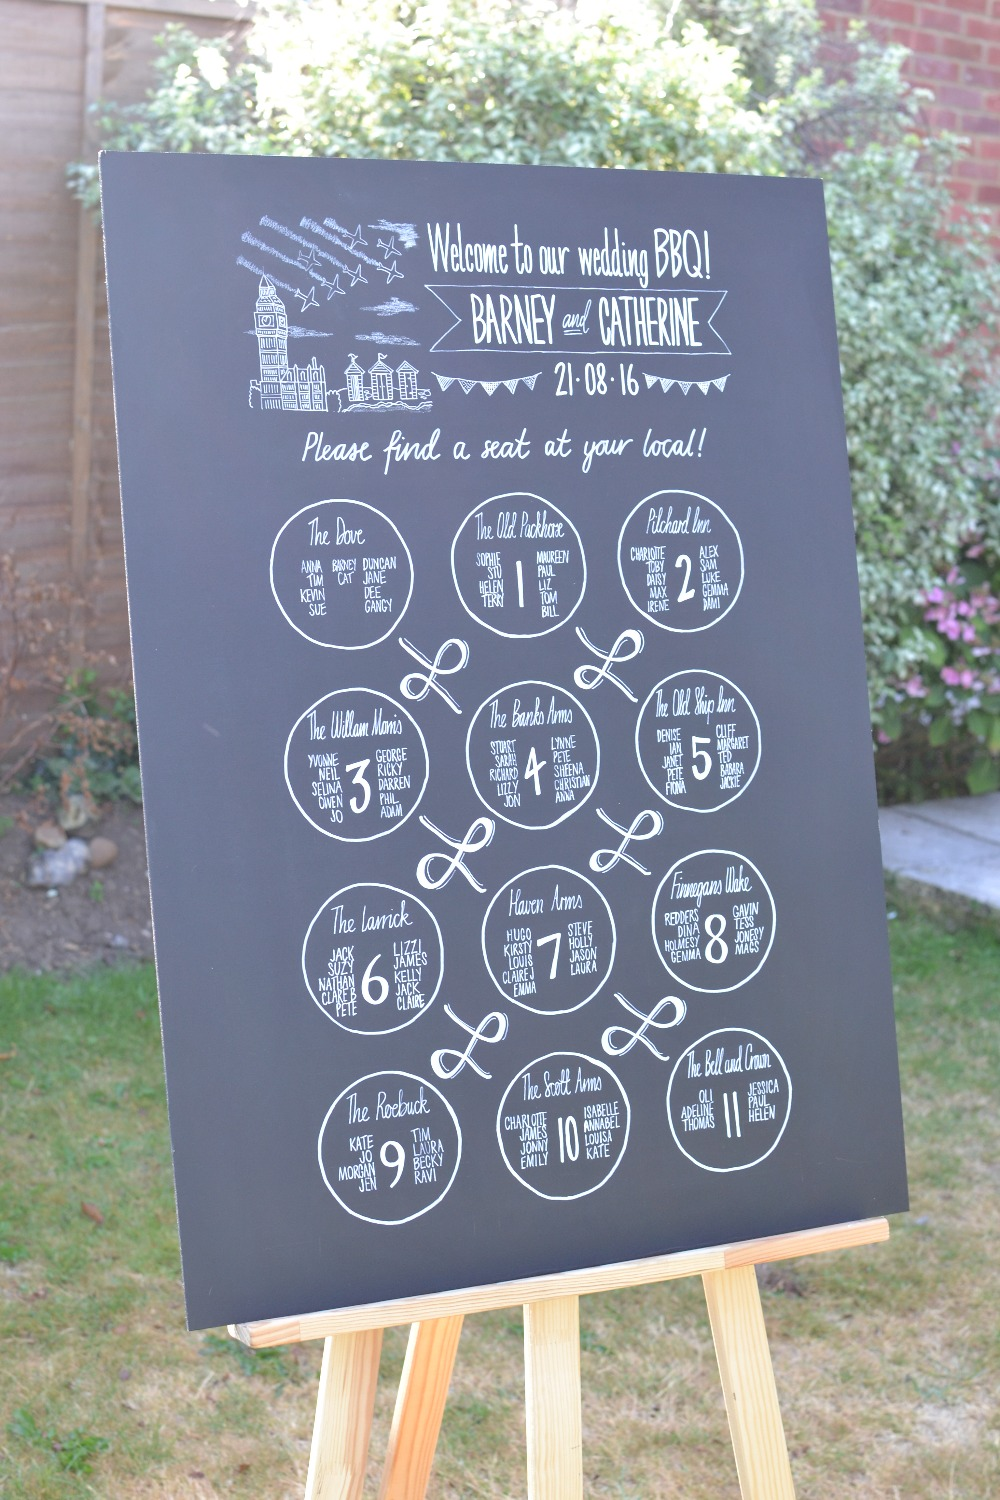 Barney & Catherine Table Plan - August 2016 (11)_edited